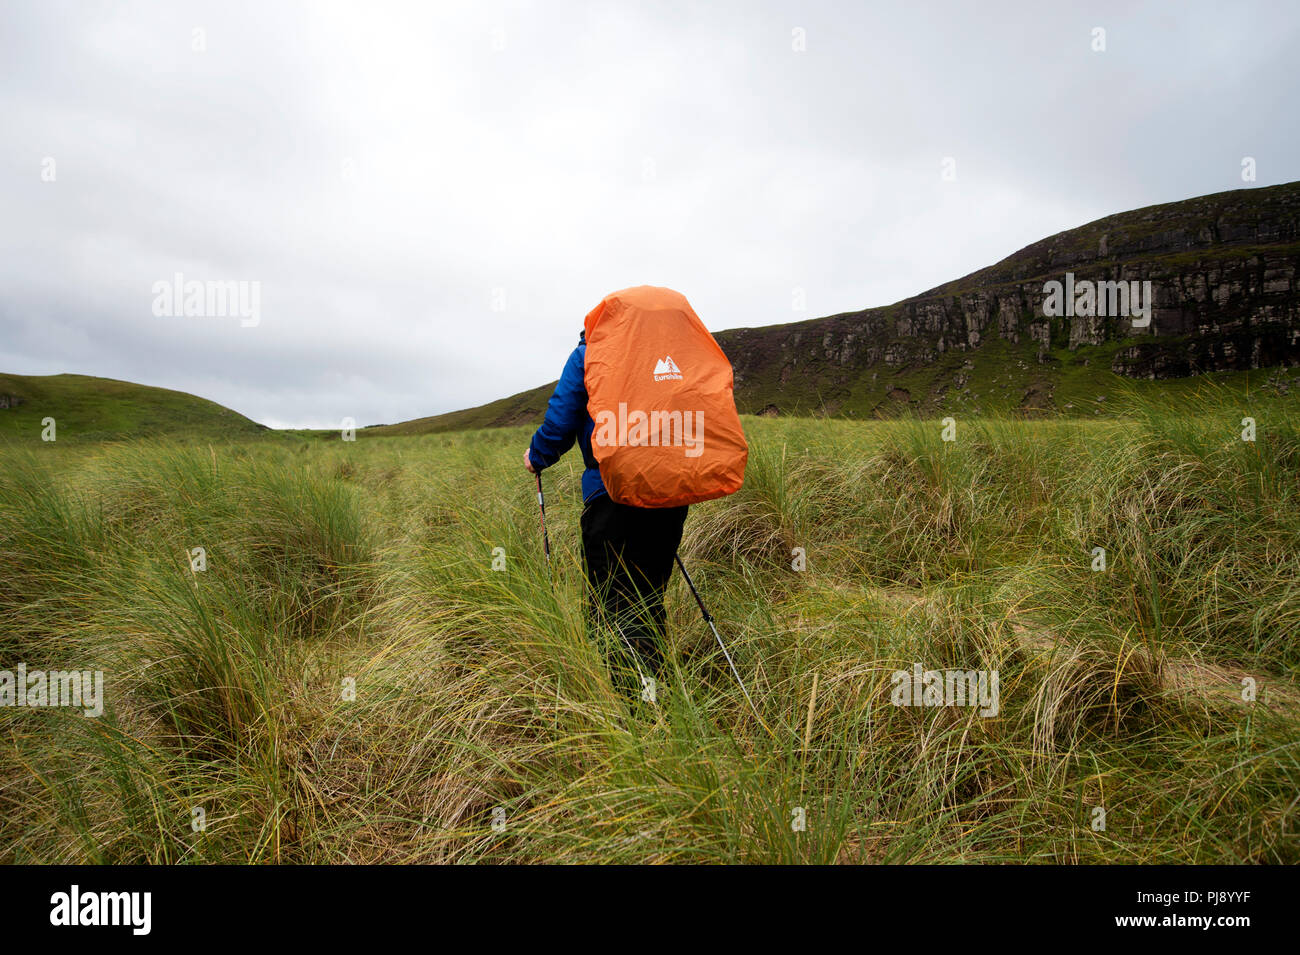 Scotland. Sutherland. Sandwood Bay. Solitary walker with protective cover on his backpack. - Stock Image